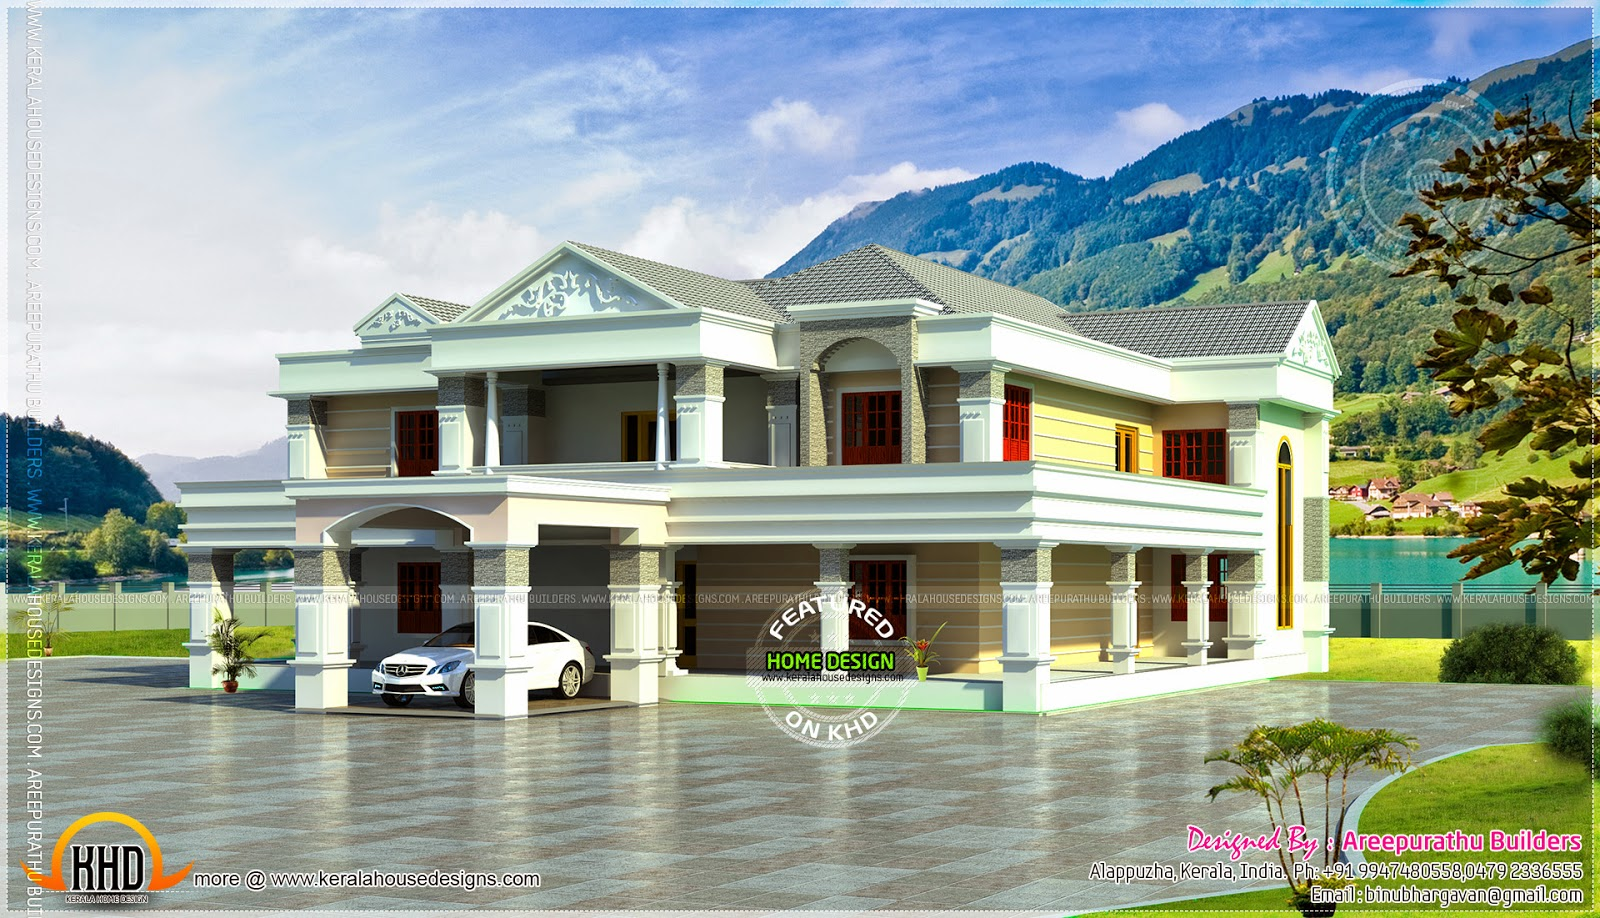 6 bhk super luxury home elevation kerala home design and floor plans - Luxury houseplans ideas ...